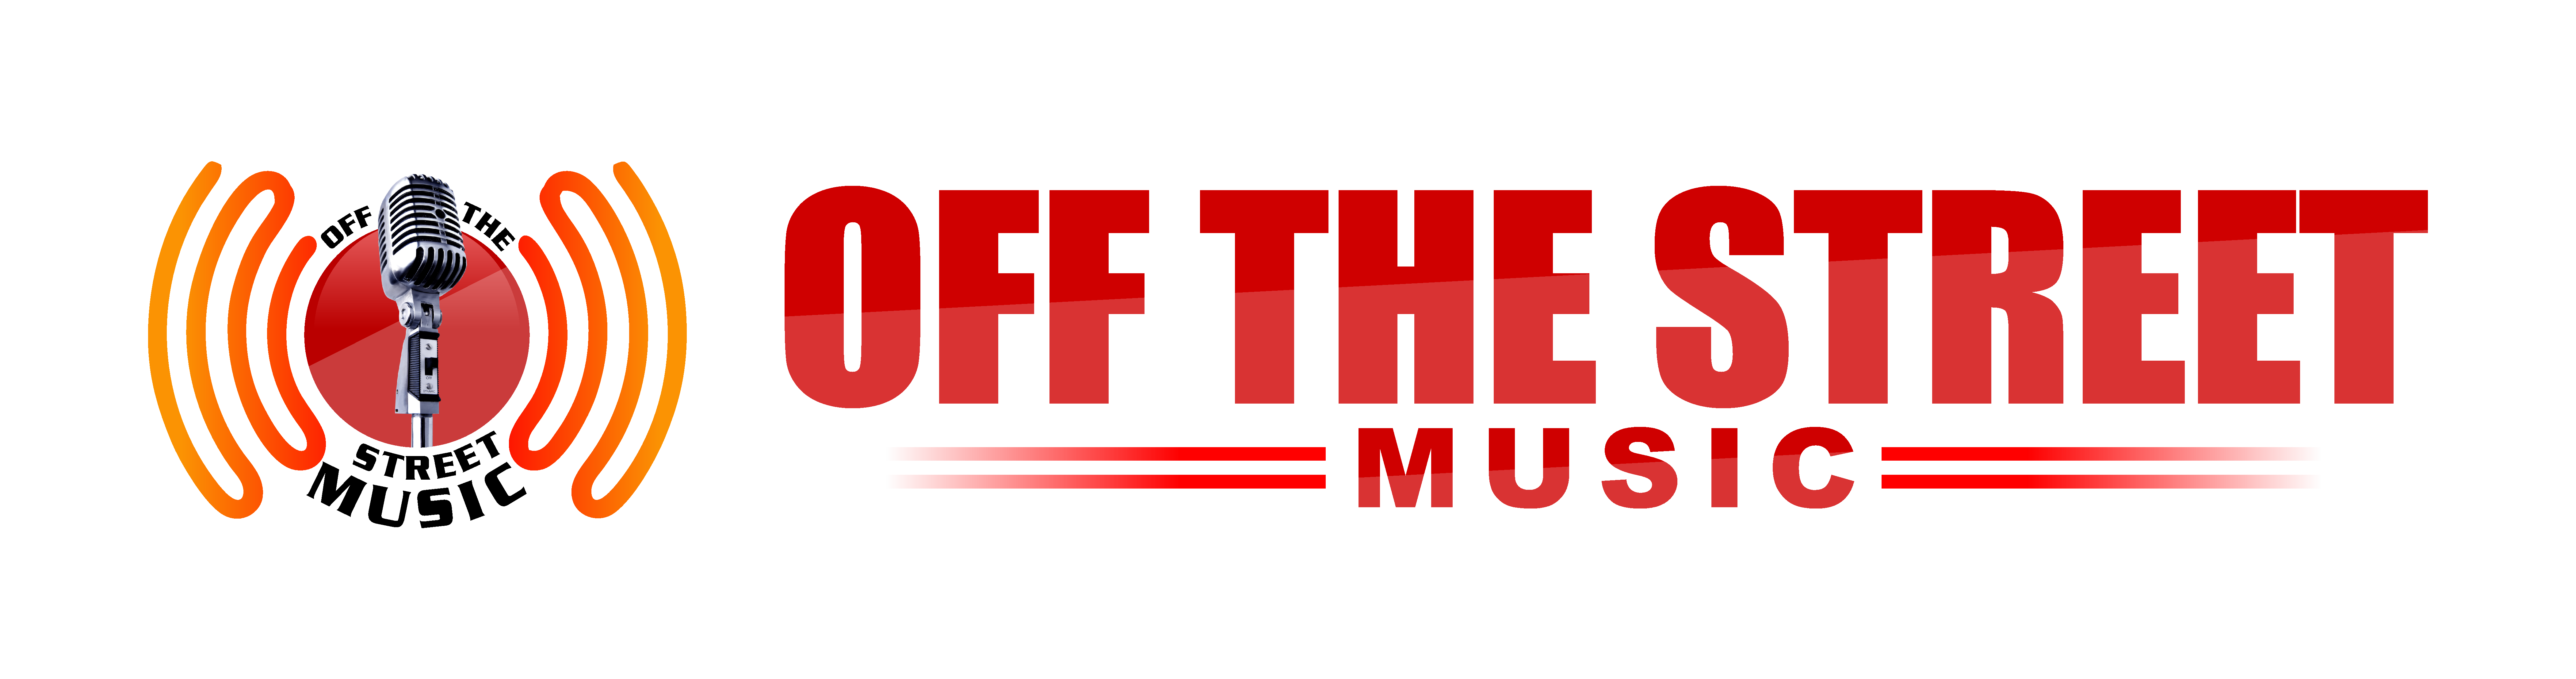 Off the Street Music